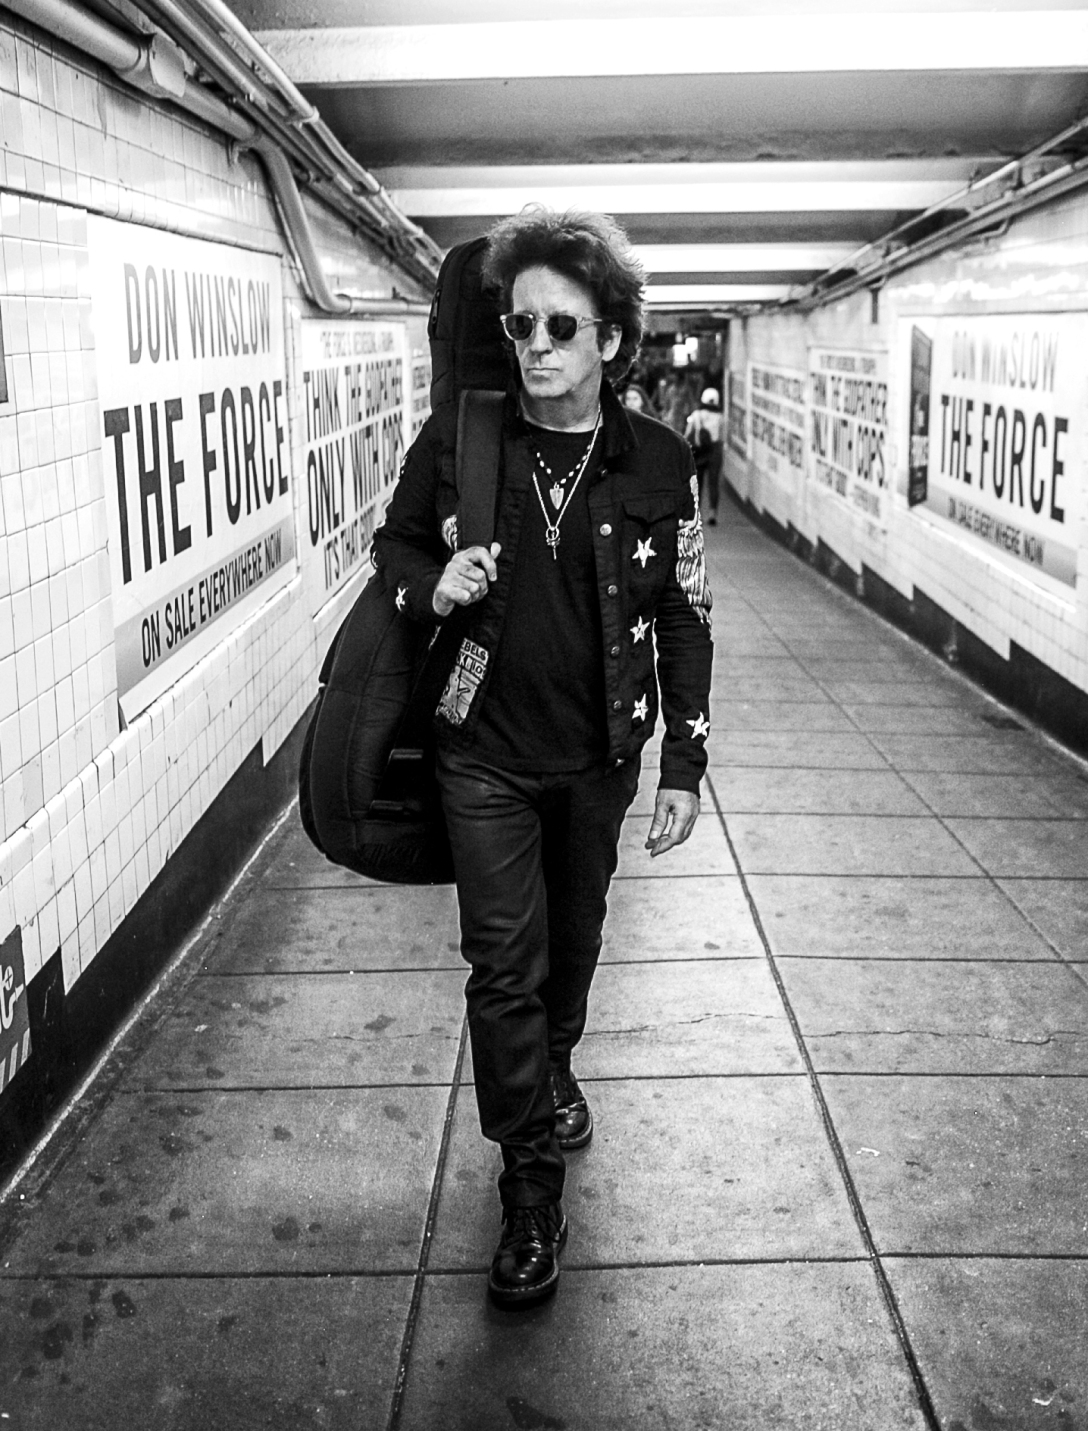 Willie_Nile_Subway_MG_7173-Edit-Croped_DM-BW_300